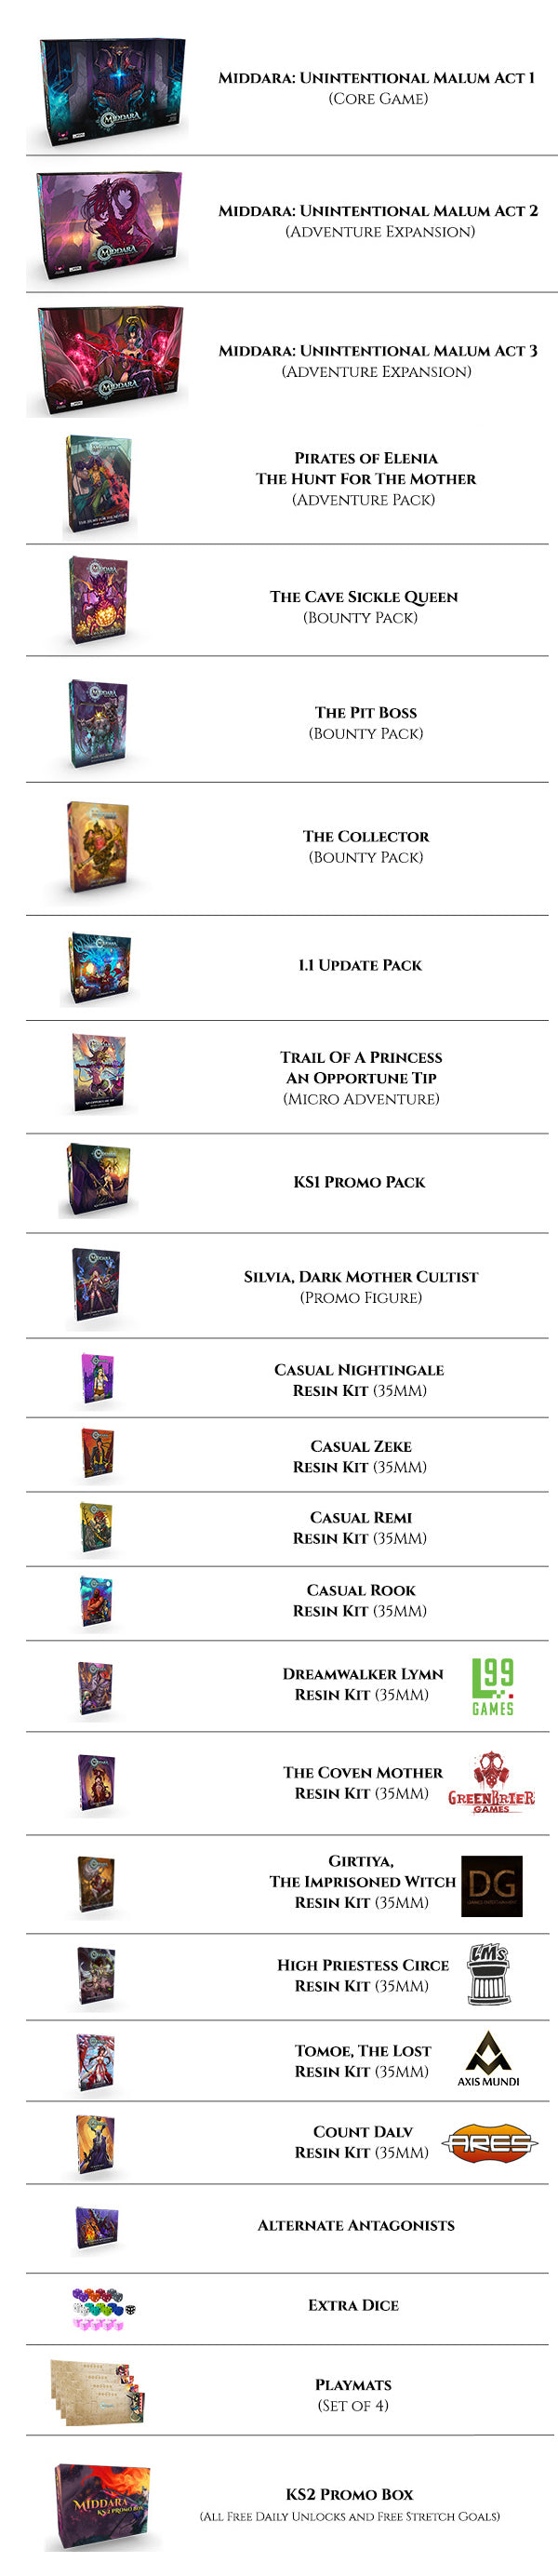 Middara Through The Portal With Swag Order Bundle Kickstarter TheGameSteward The Game Steward